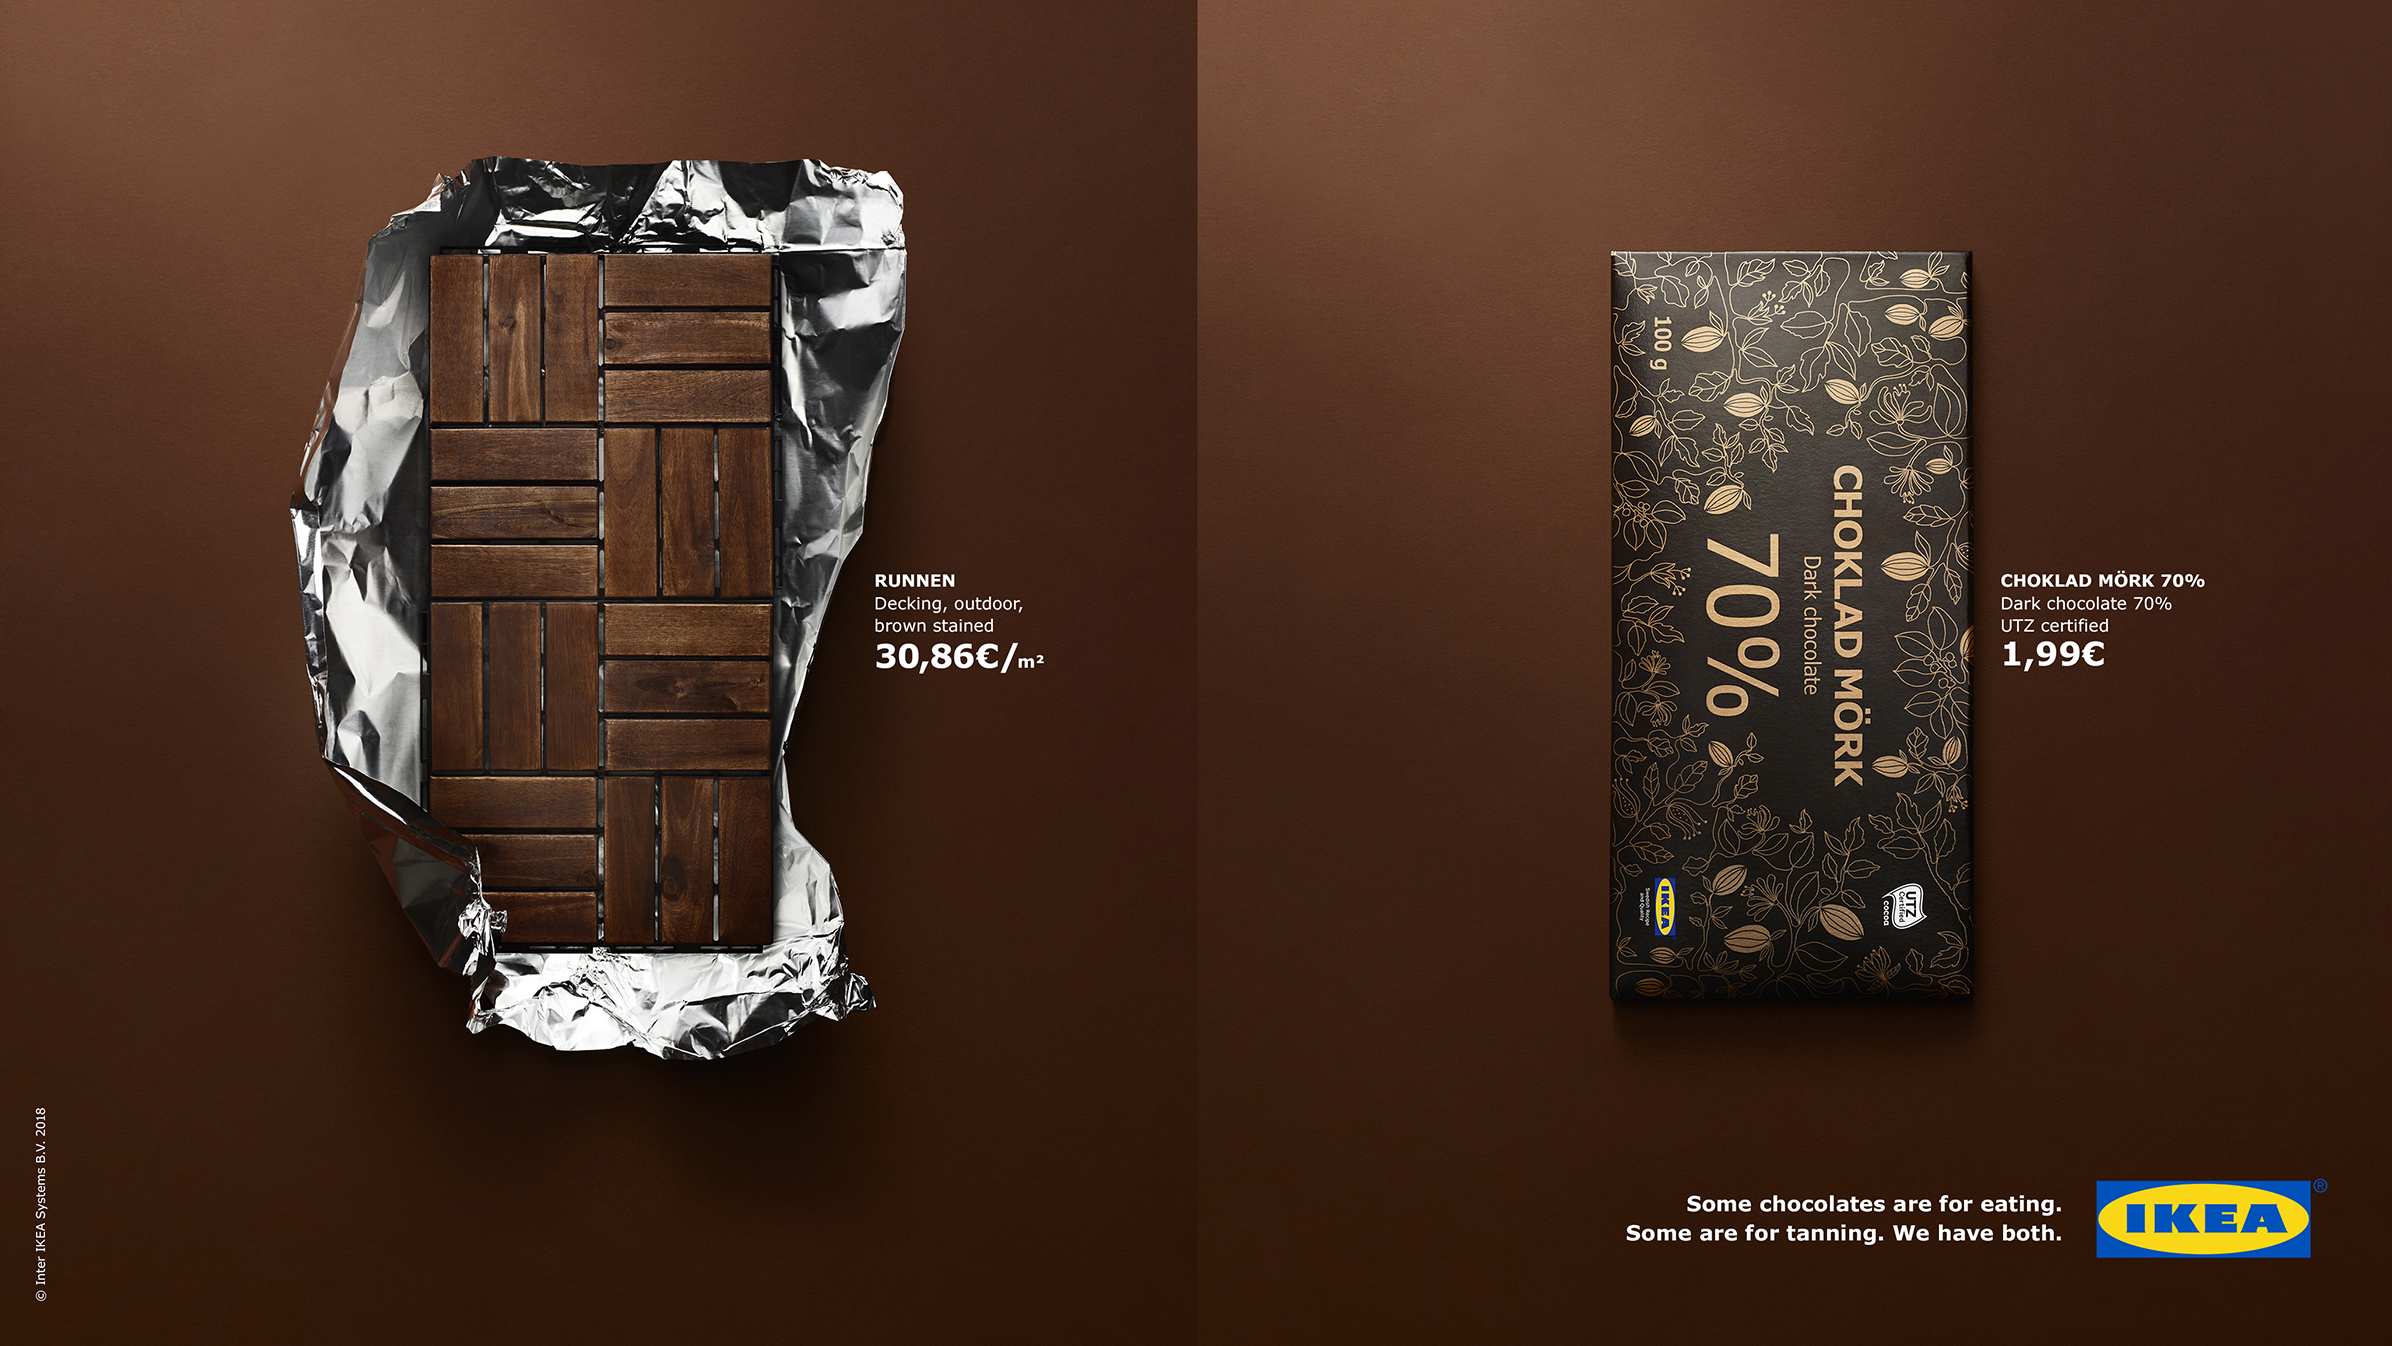 Hop-hope-actus-ikea-marketing-chocolat.jpg